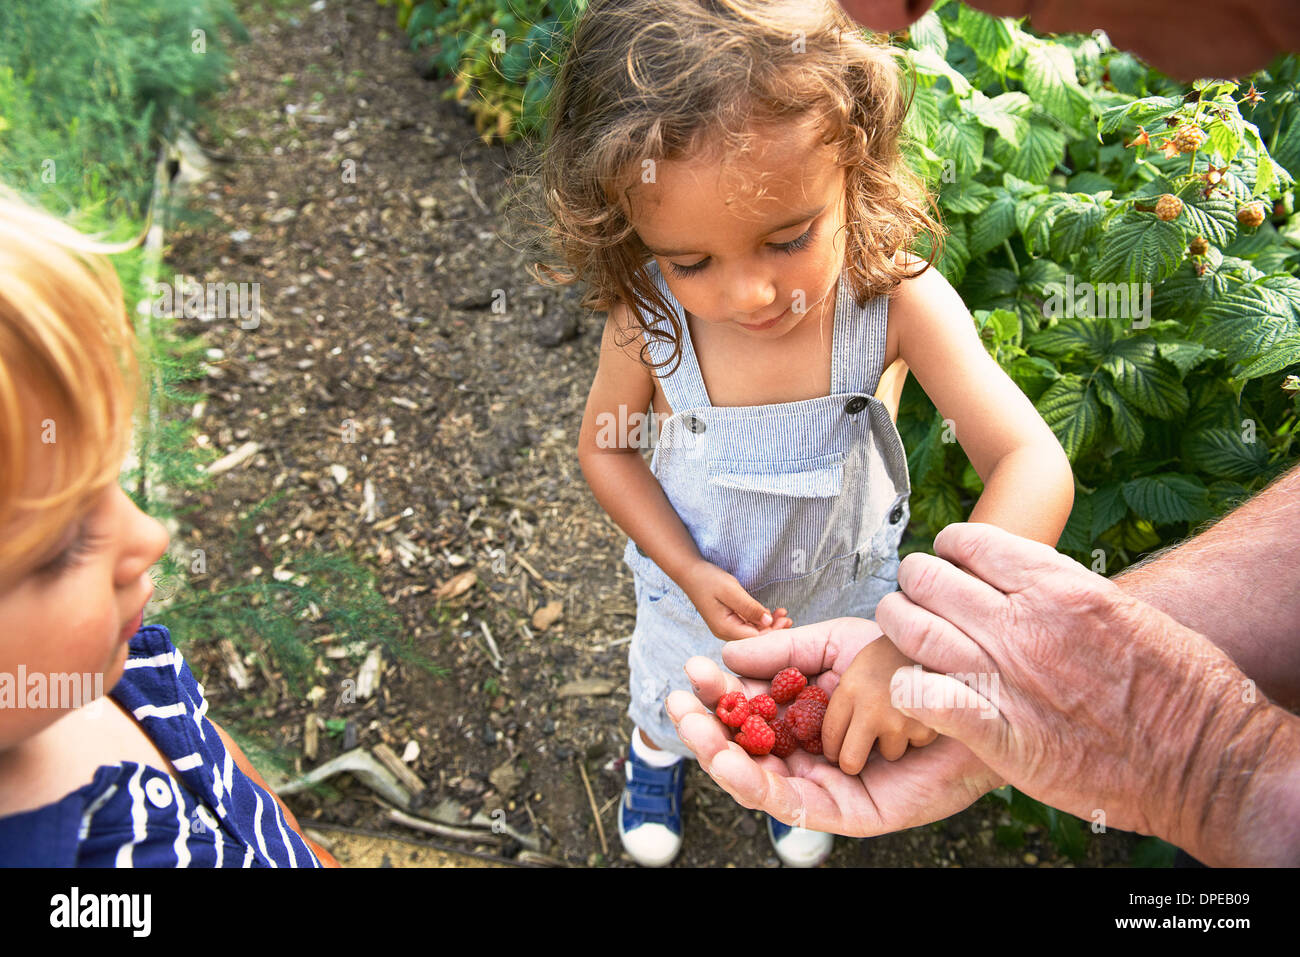 Grandfather sharing raspberries with grandchildren - Stock Image